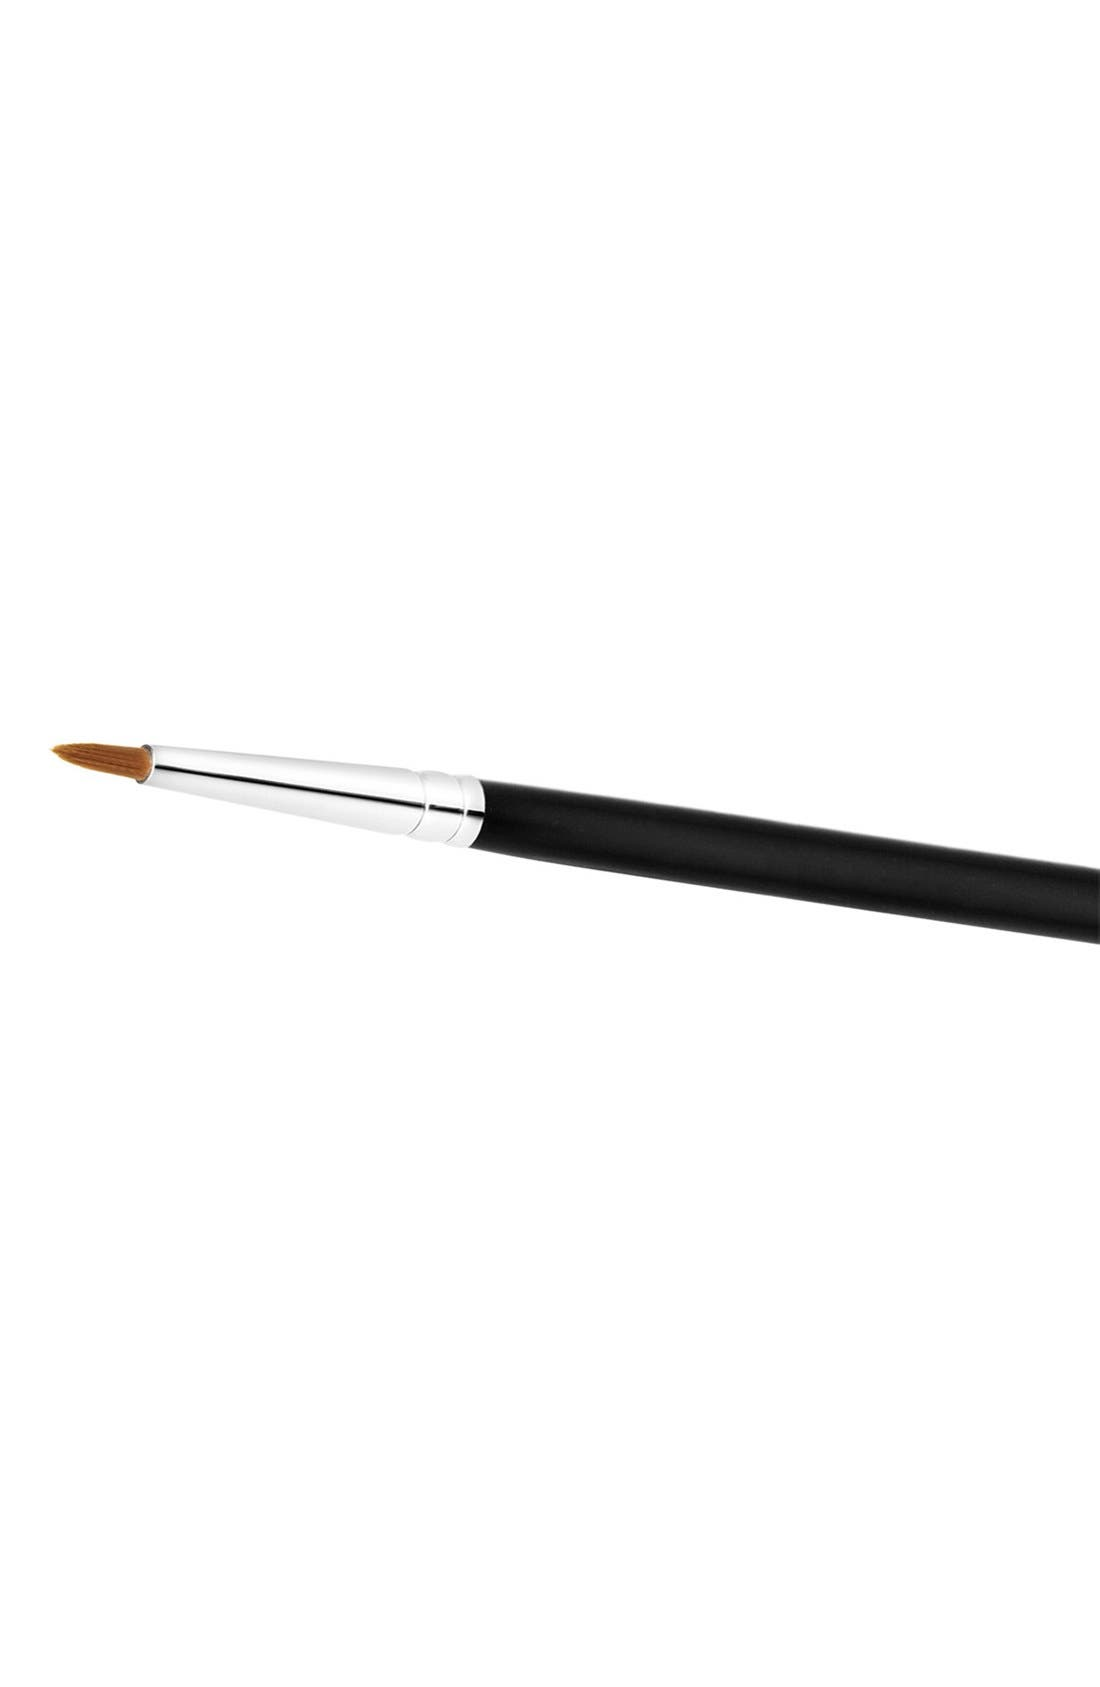 MAC 209 Eyeliner Brush,                             Alternate thumbnail 3, color,                             000